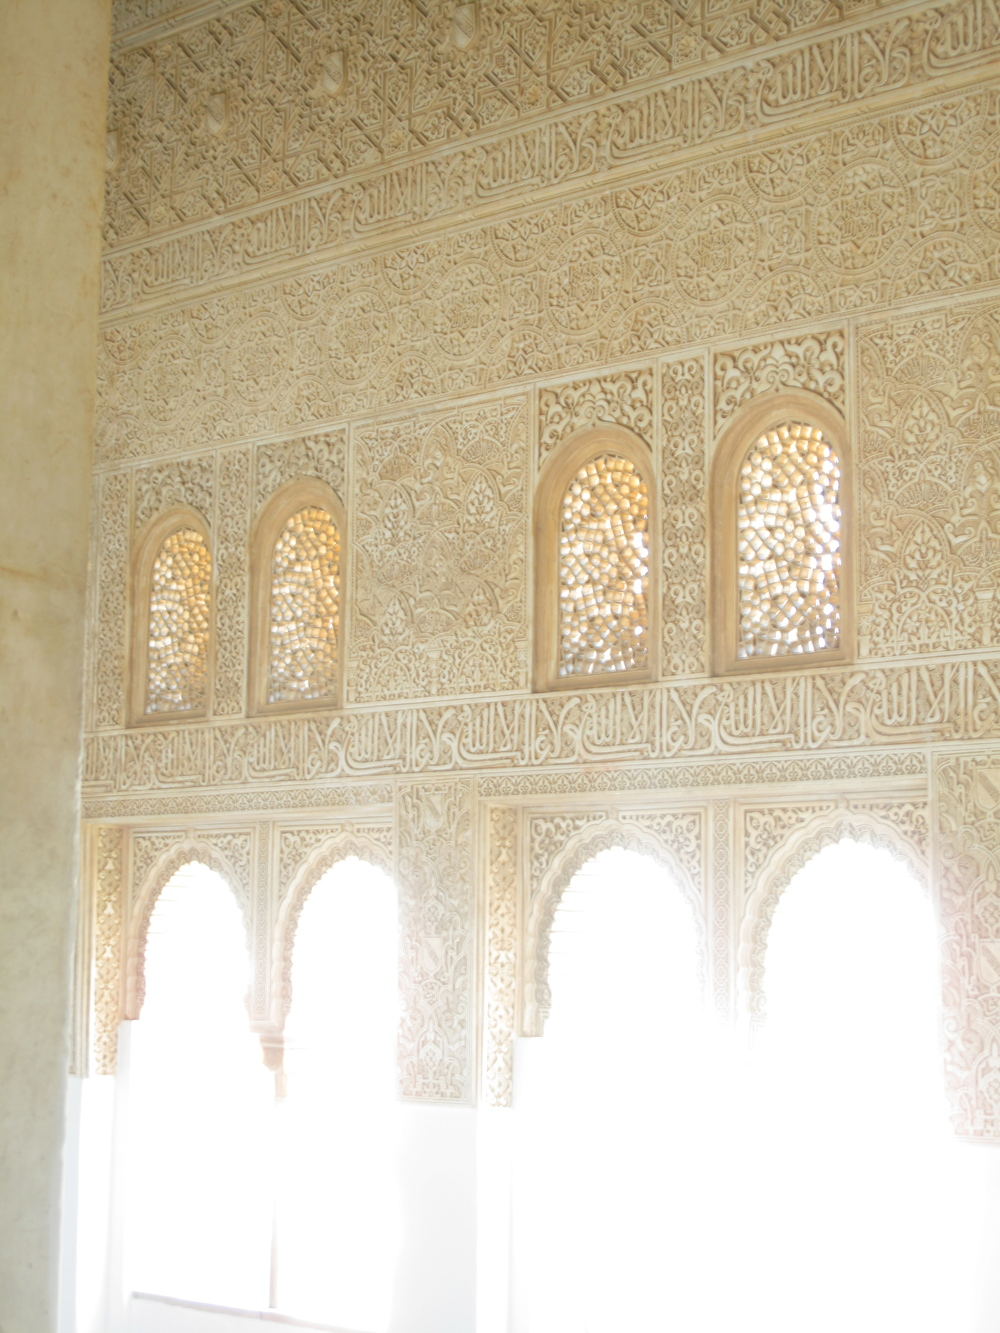 Light pouring through islamic style carvings and windows at the Alhambra